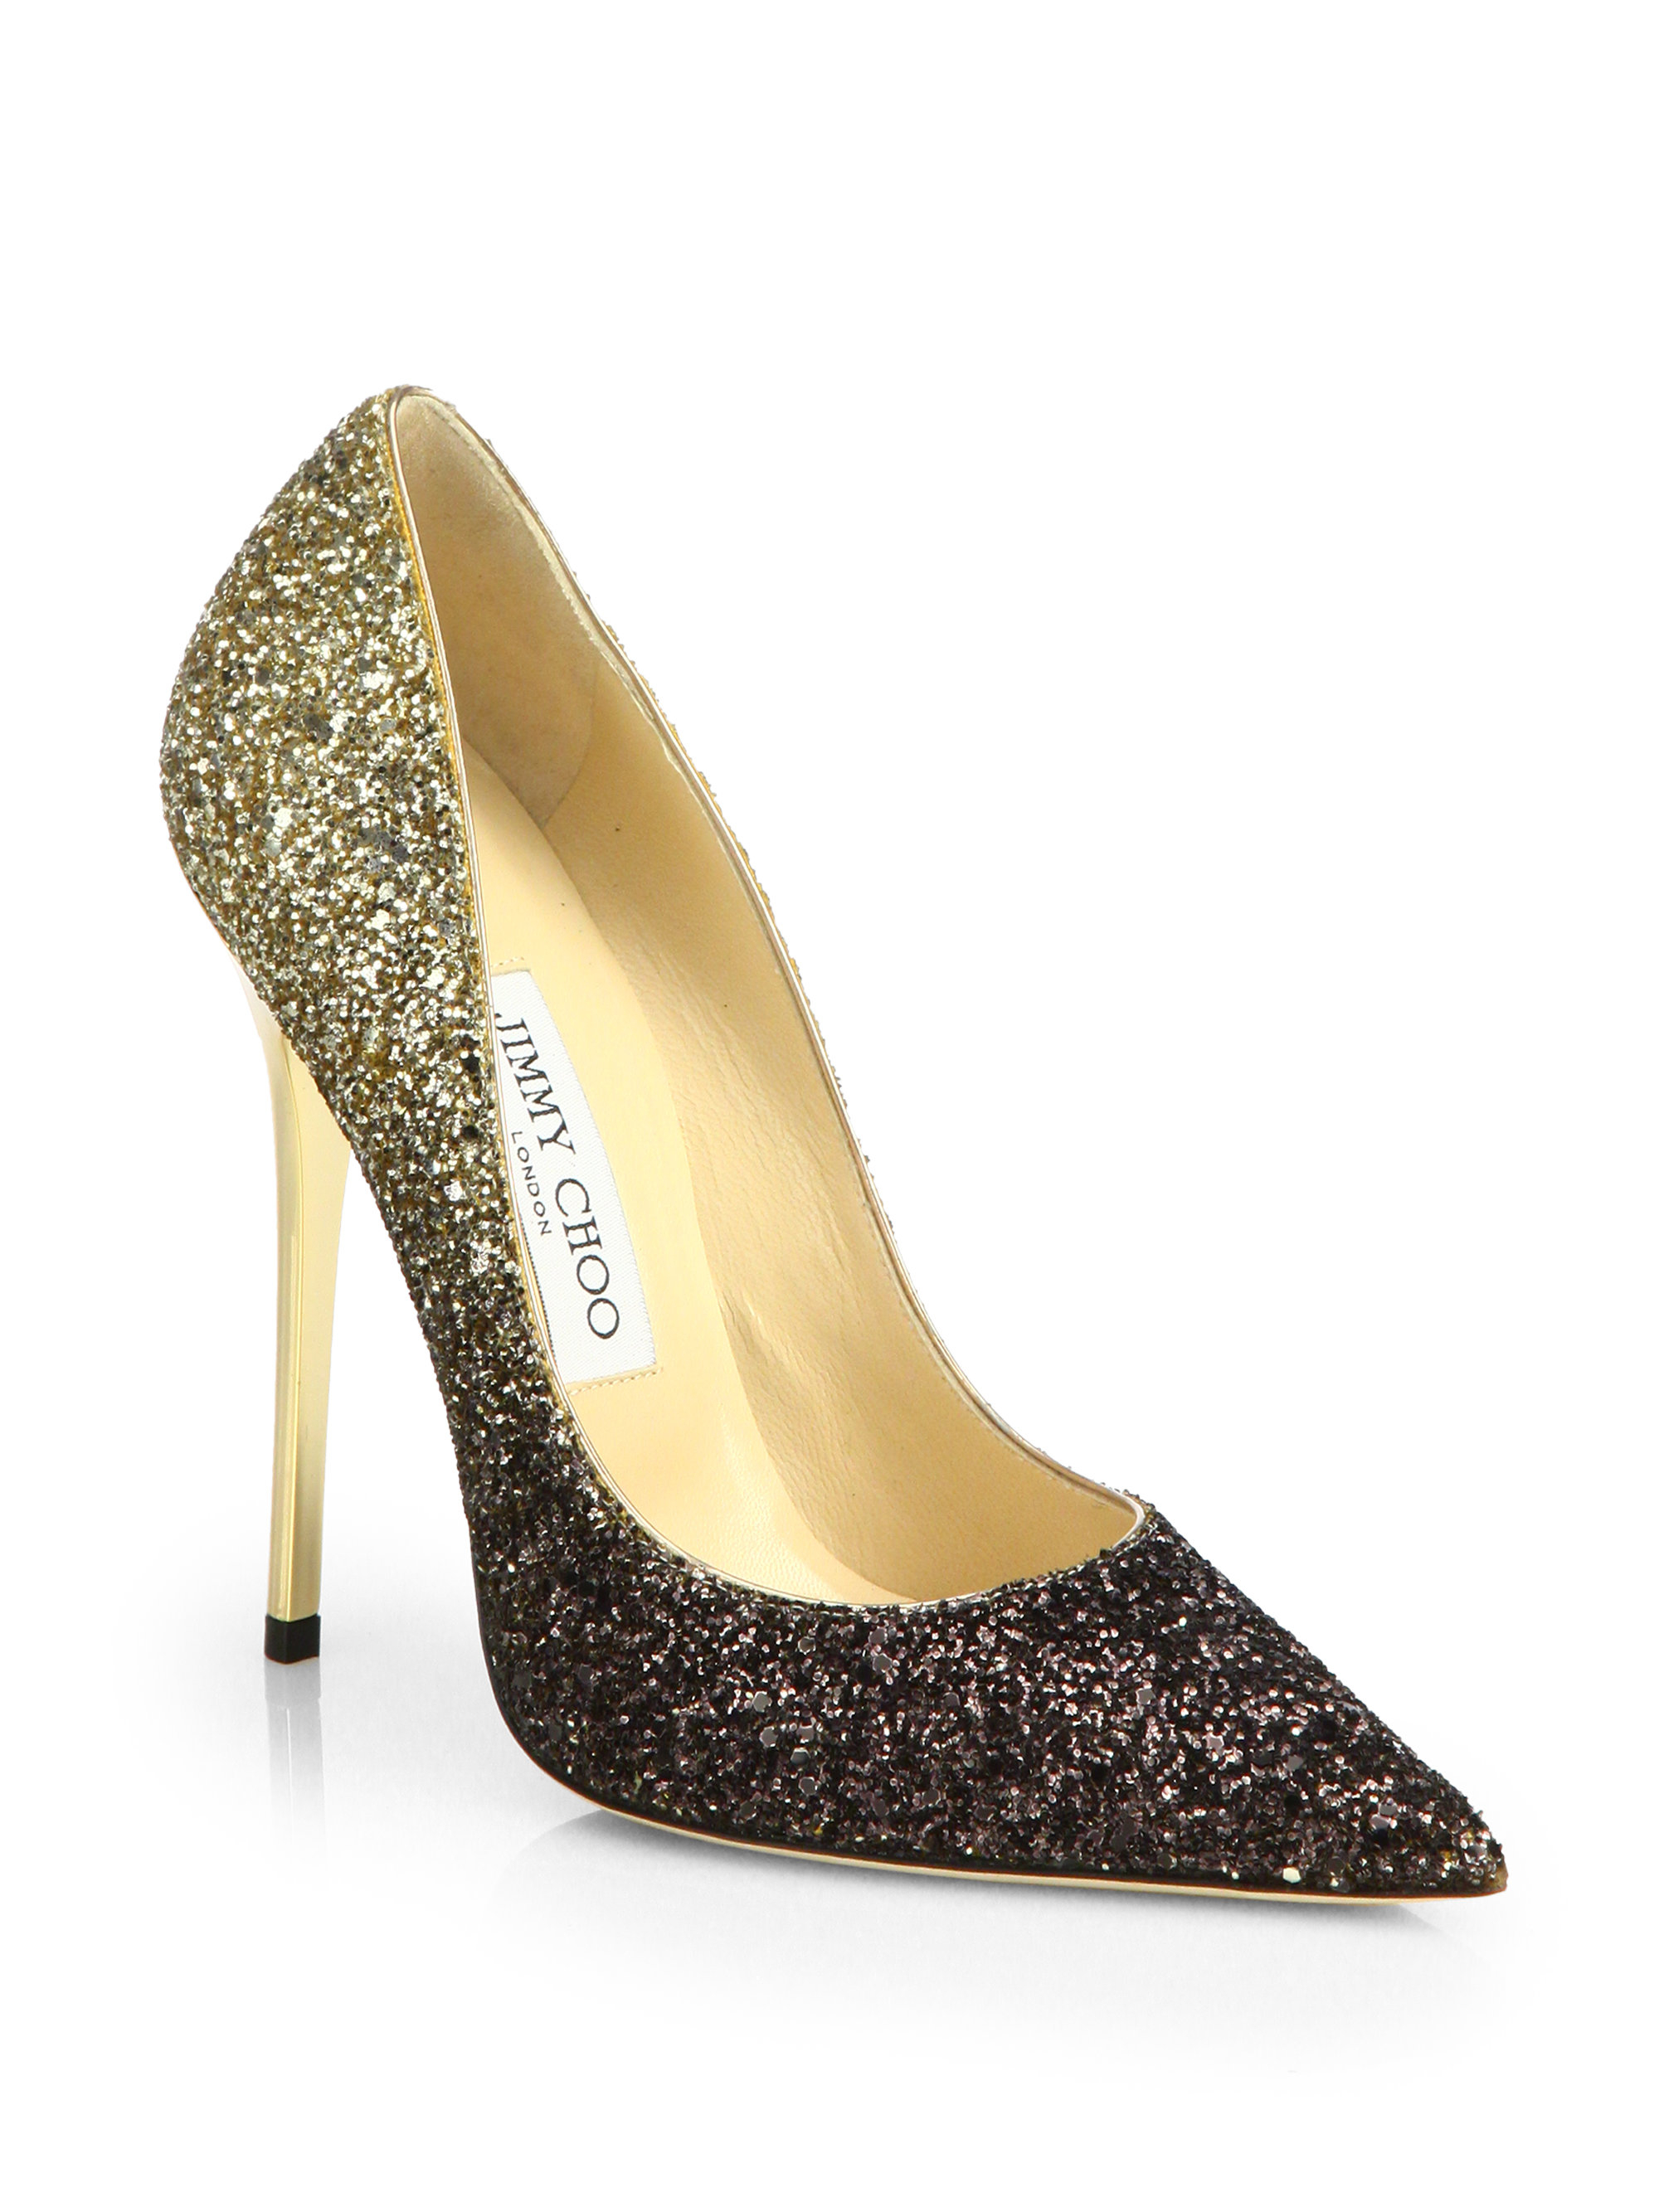 1085ffadd8c9 ... release date lyst jimmy choo anouk 120 glitter degrade pumps in  metallic 352d0 80881